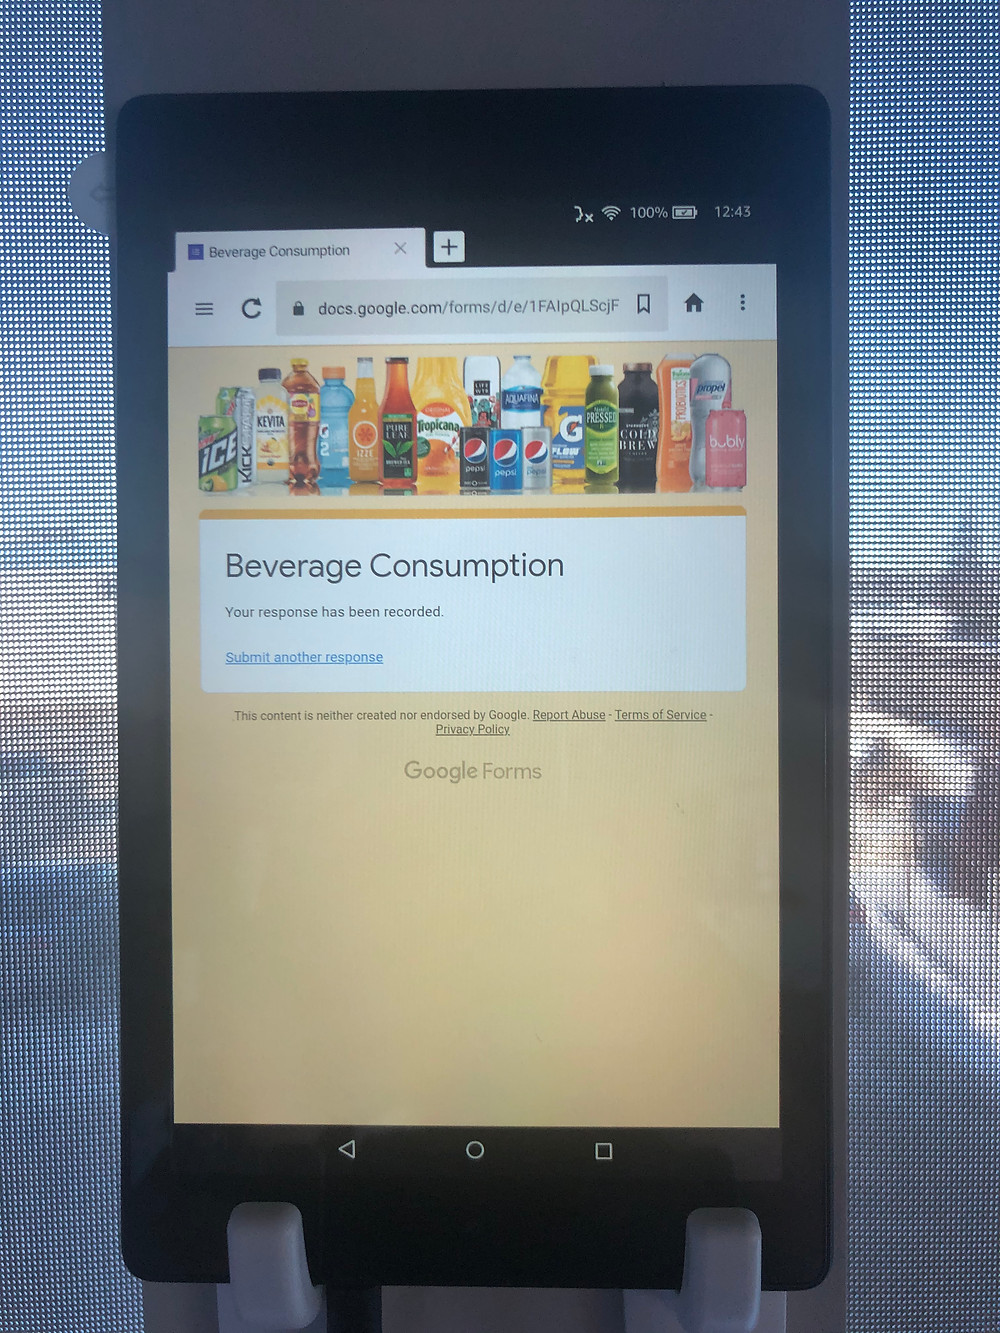 Amazon tablet with beverage consumption questionnaire created by Google Forms